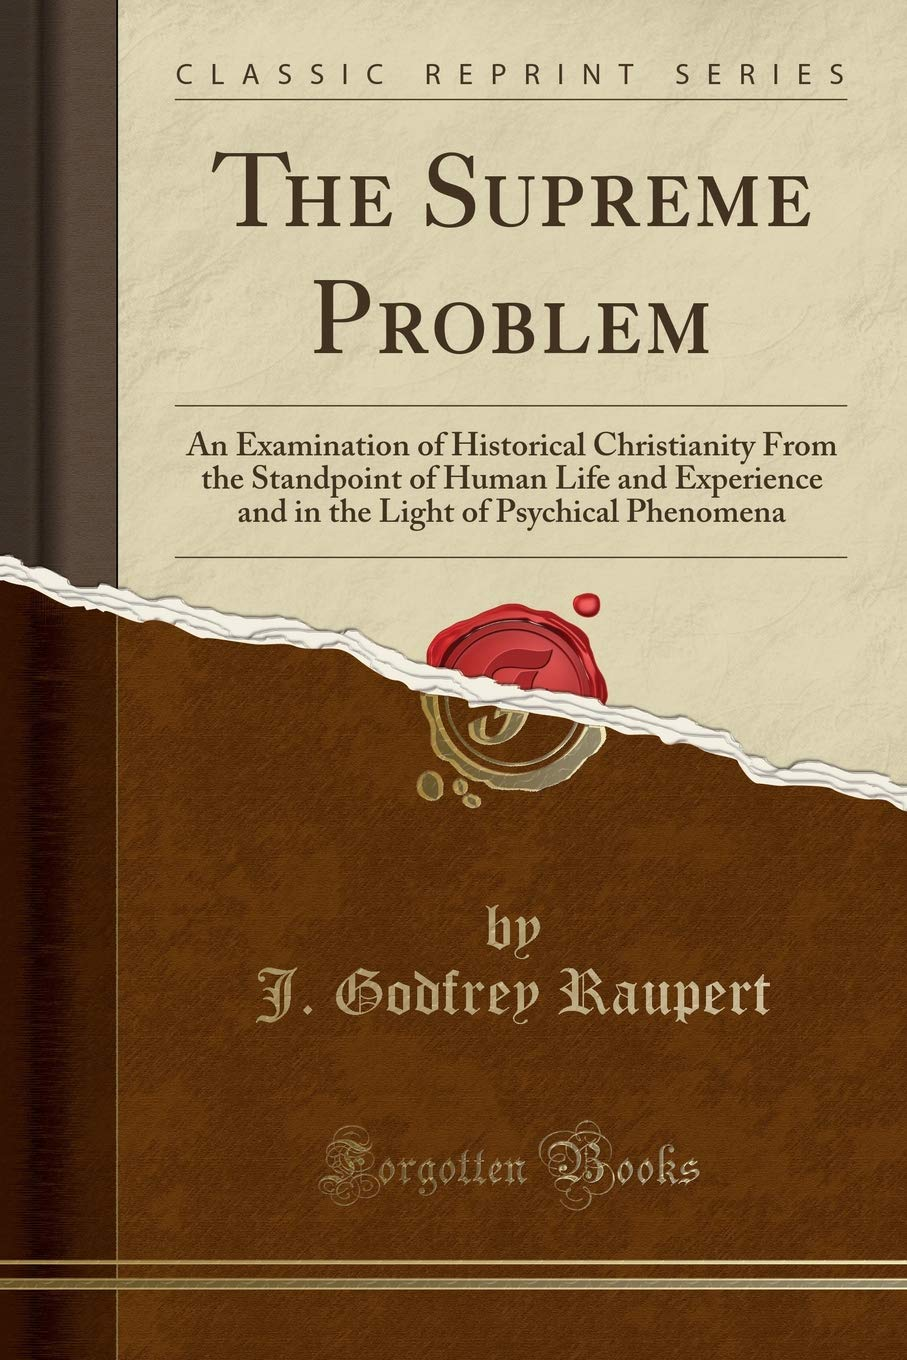 Read Online The Supreme Problem: An Examination of Historical Christianity From the Standpoint of Human Life and Experience and in the Light of Psychical Phenomena (Classic Reprint) ebook